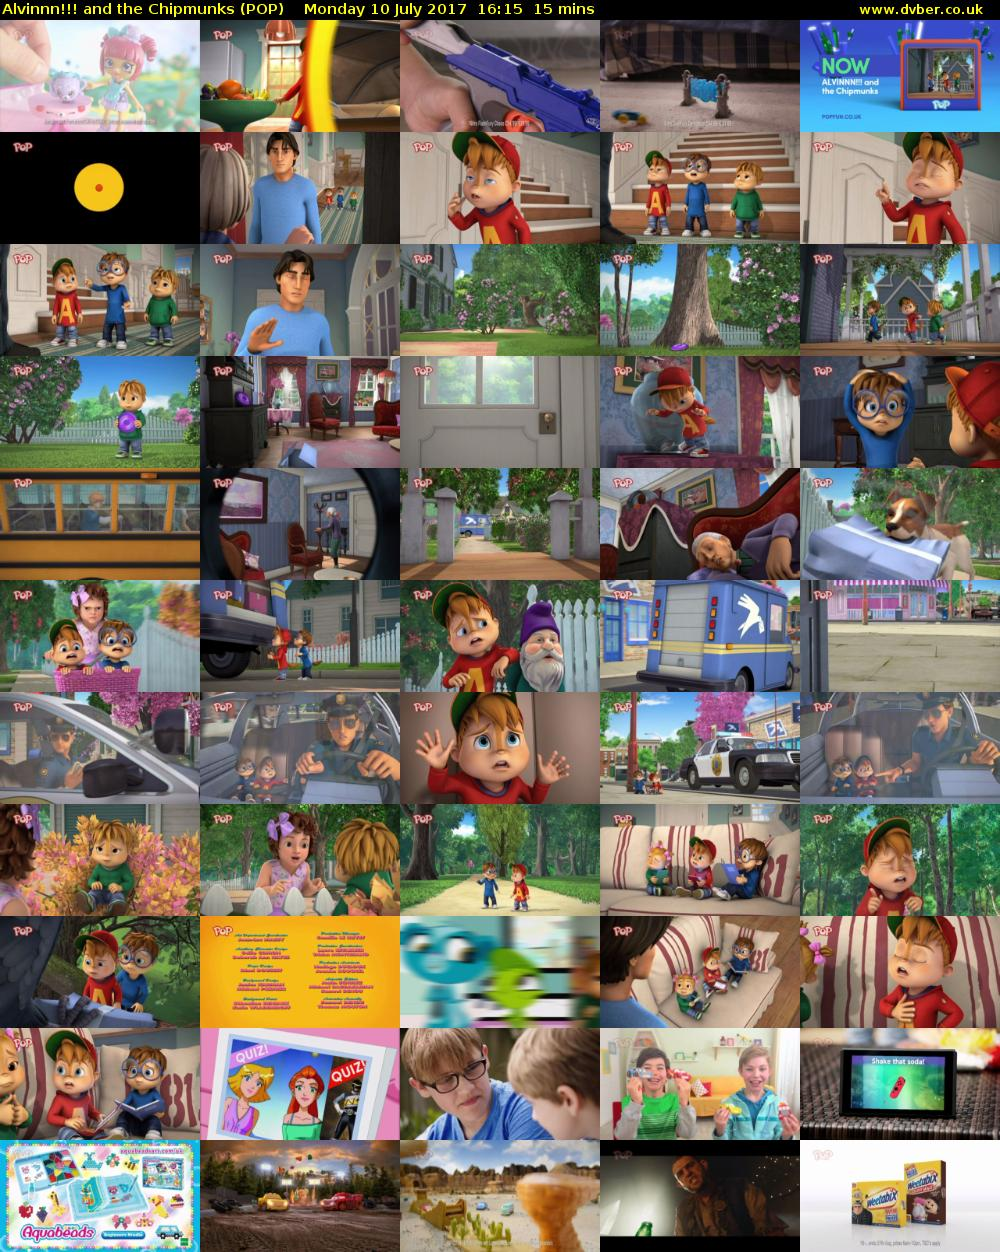 Alvinnn!!! and the Chipmunks (POP) Monday 10 July 2017 16:15 - 16:30